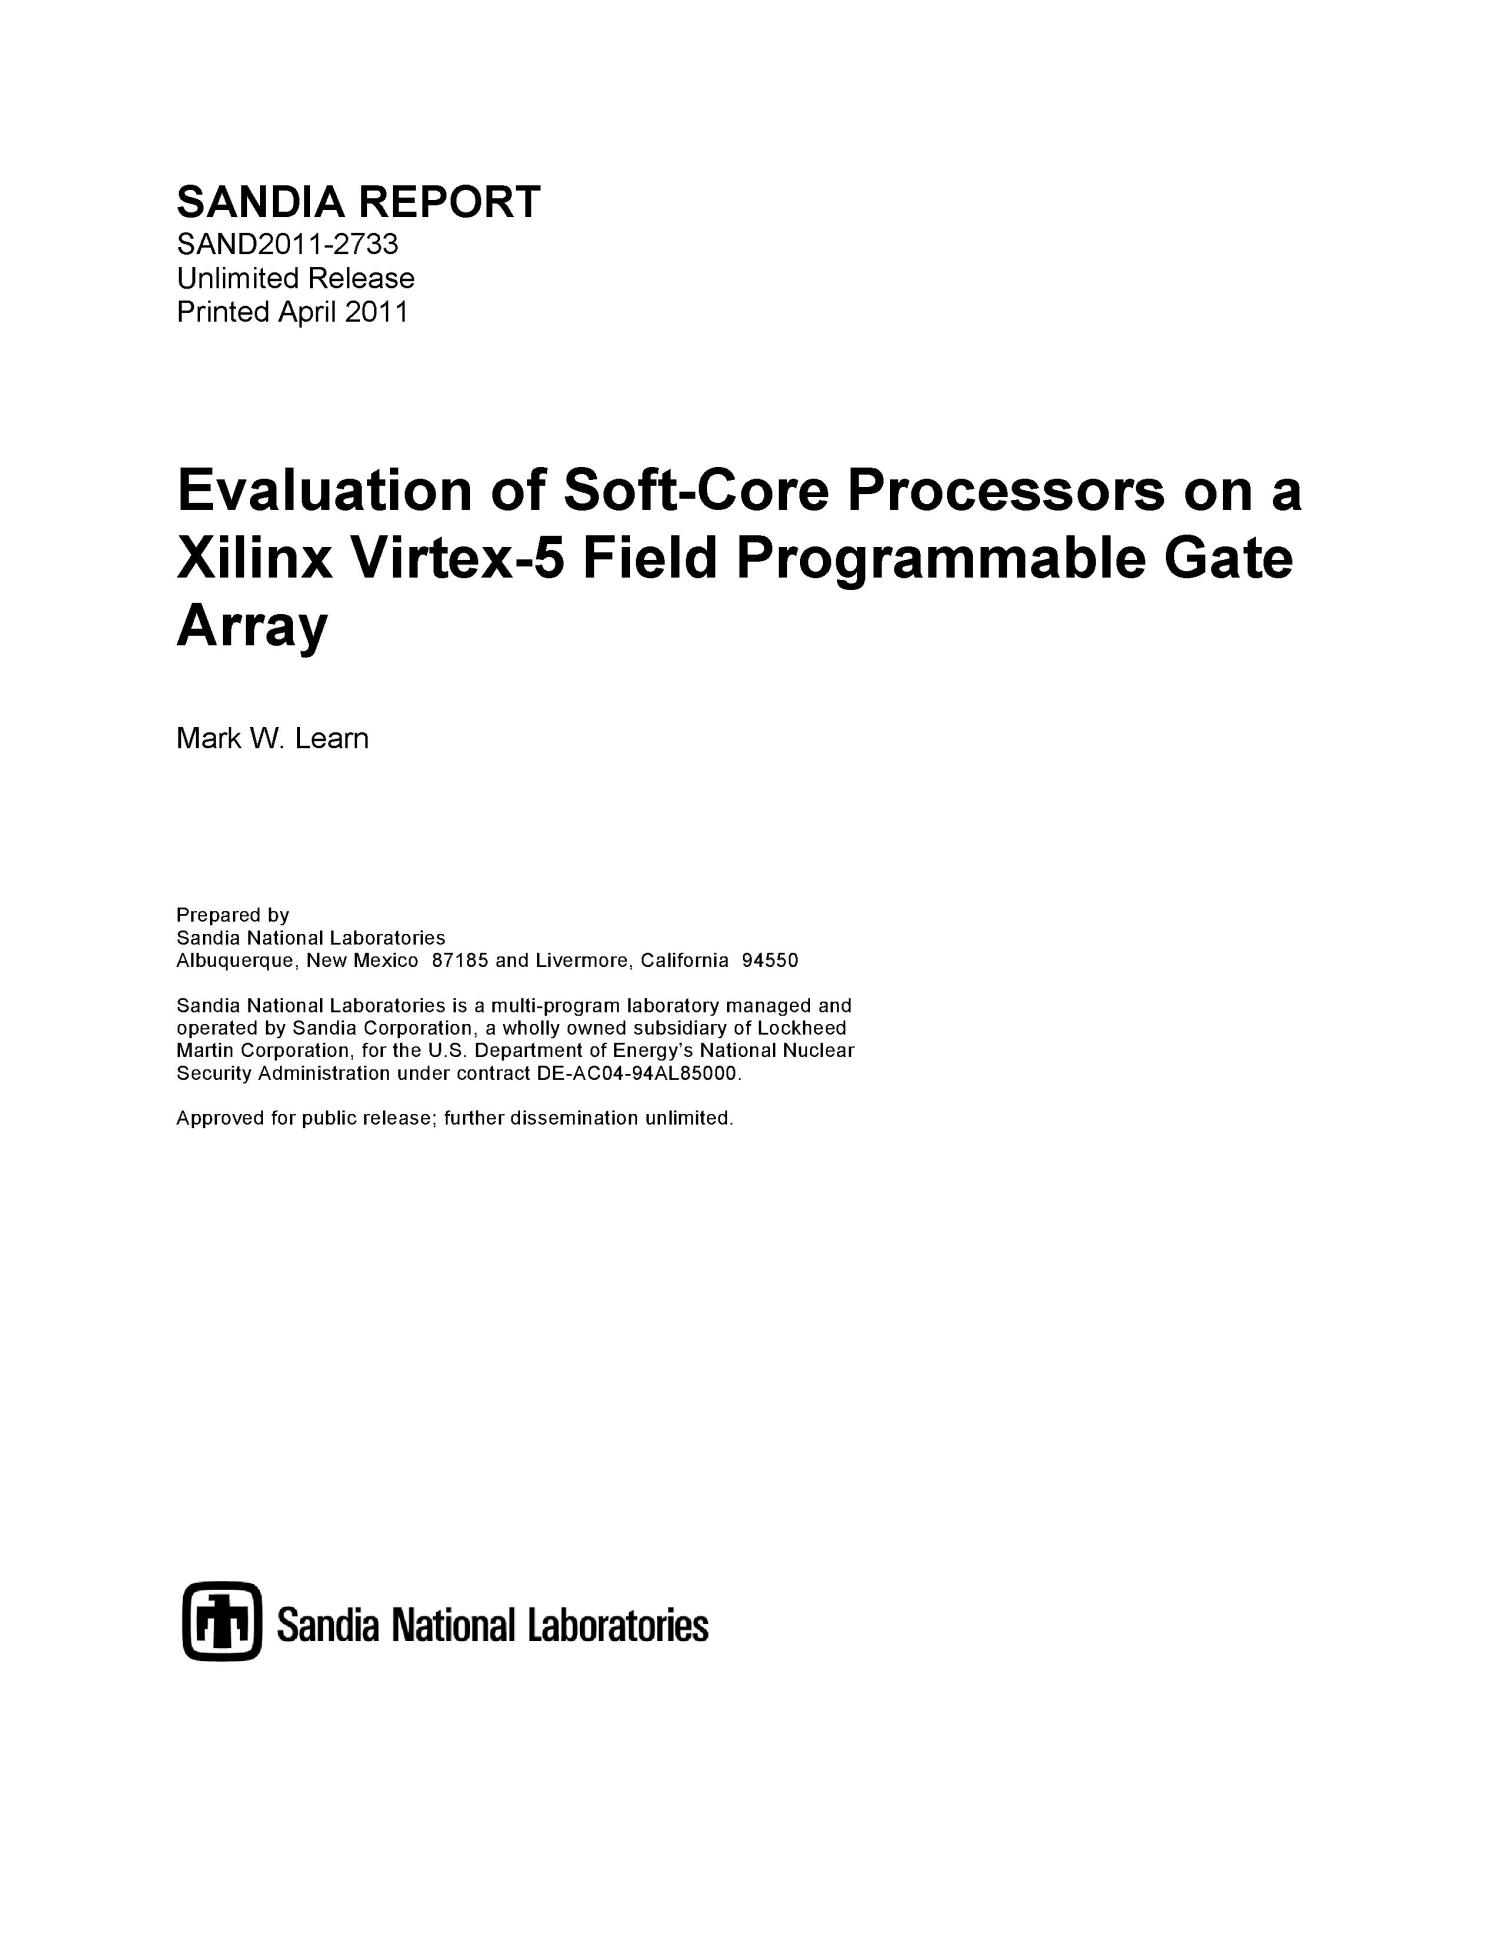 Evaluation of soft-core processors on a Xilinx Virtex-5 field programmable gate array.                                                                                                      [Sequence #]: 1 of 37